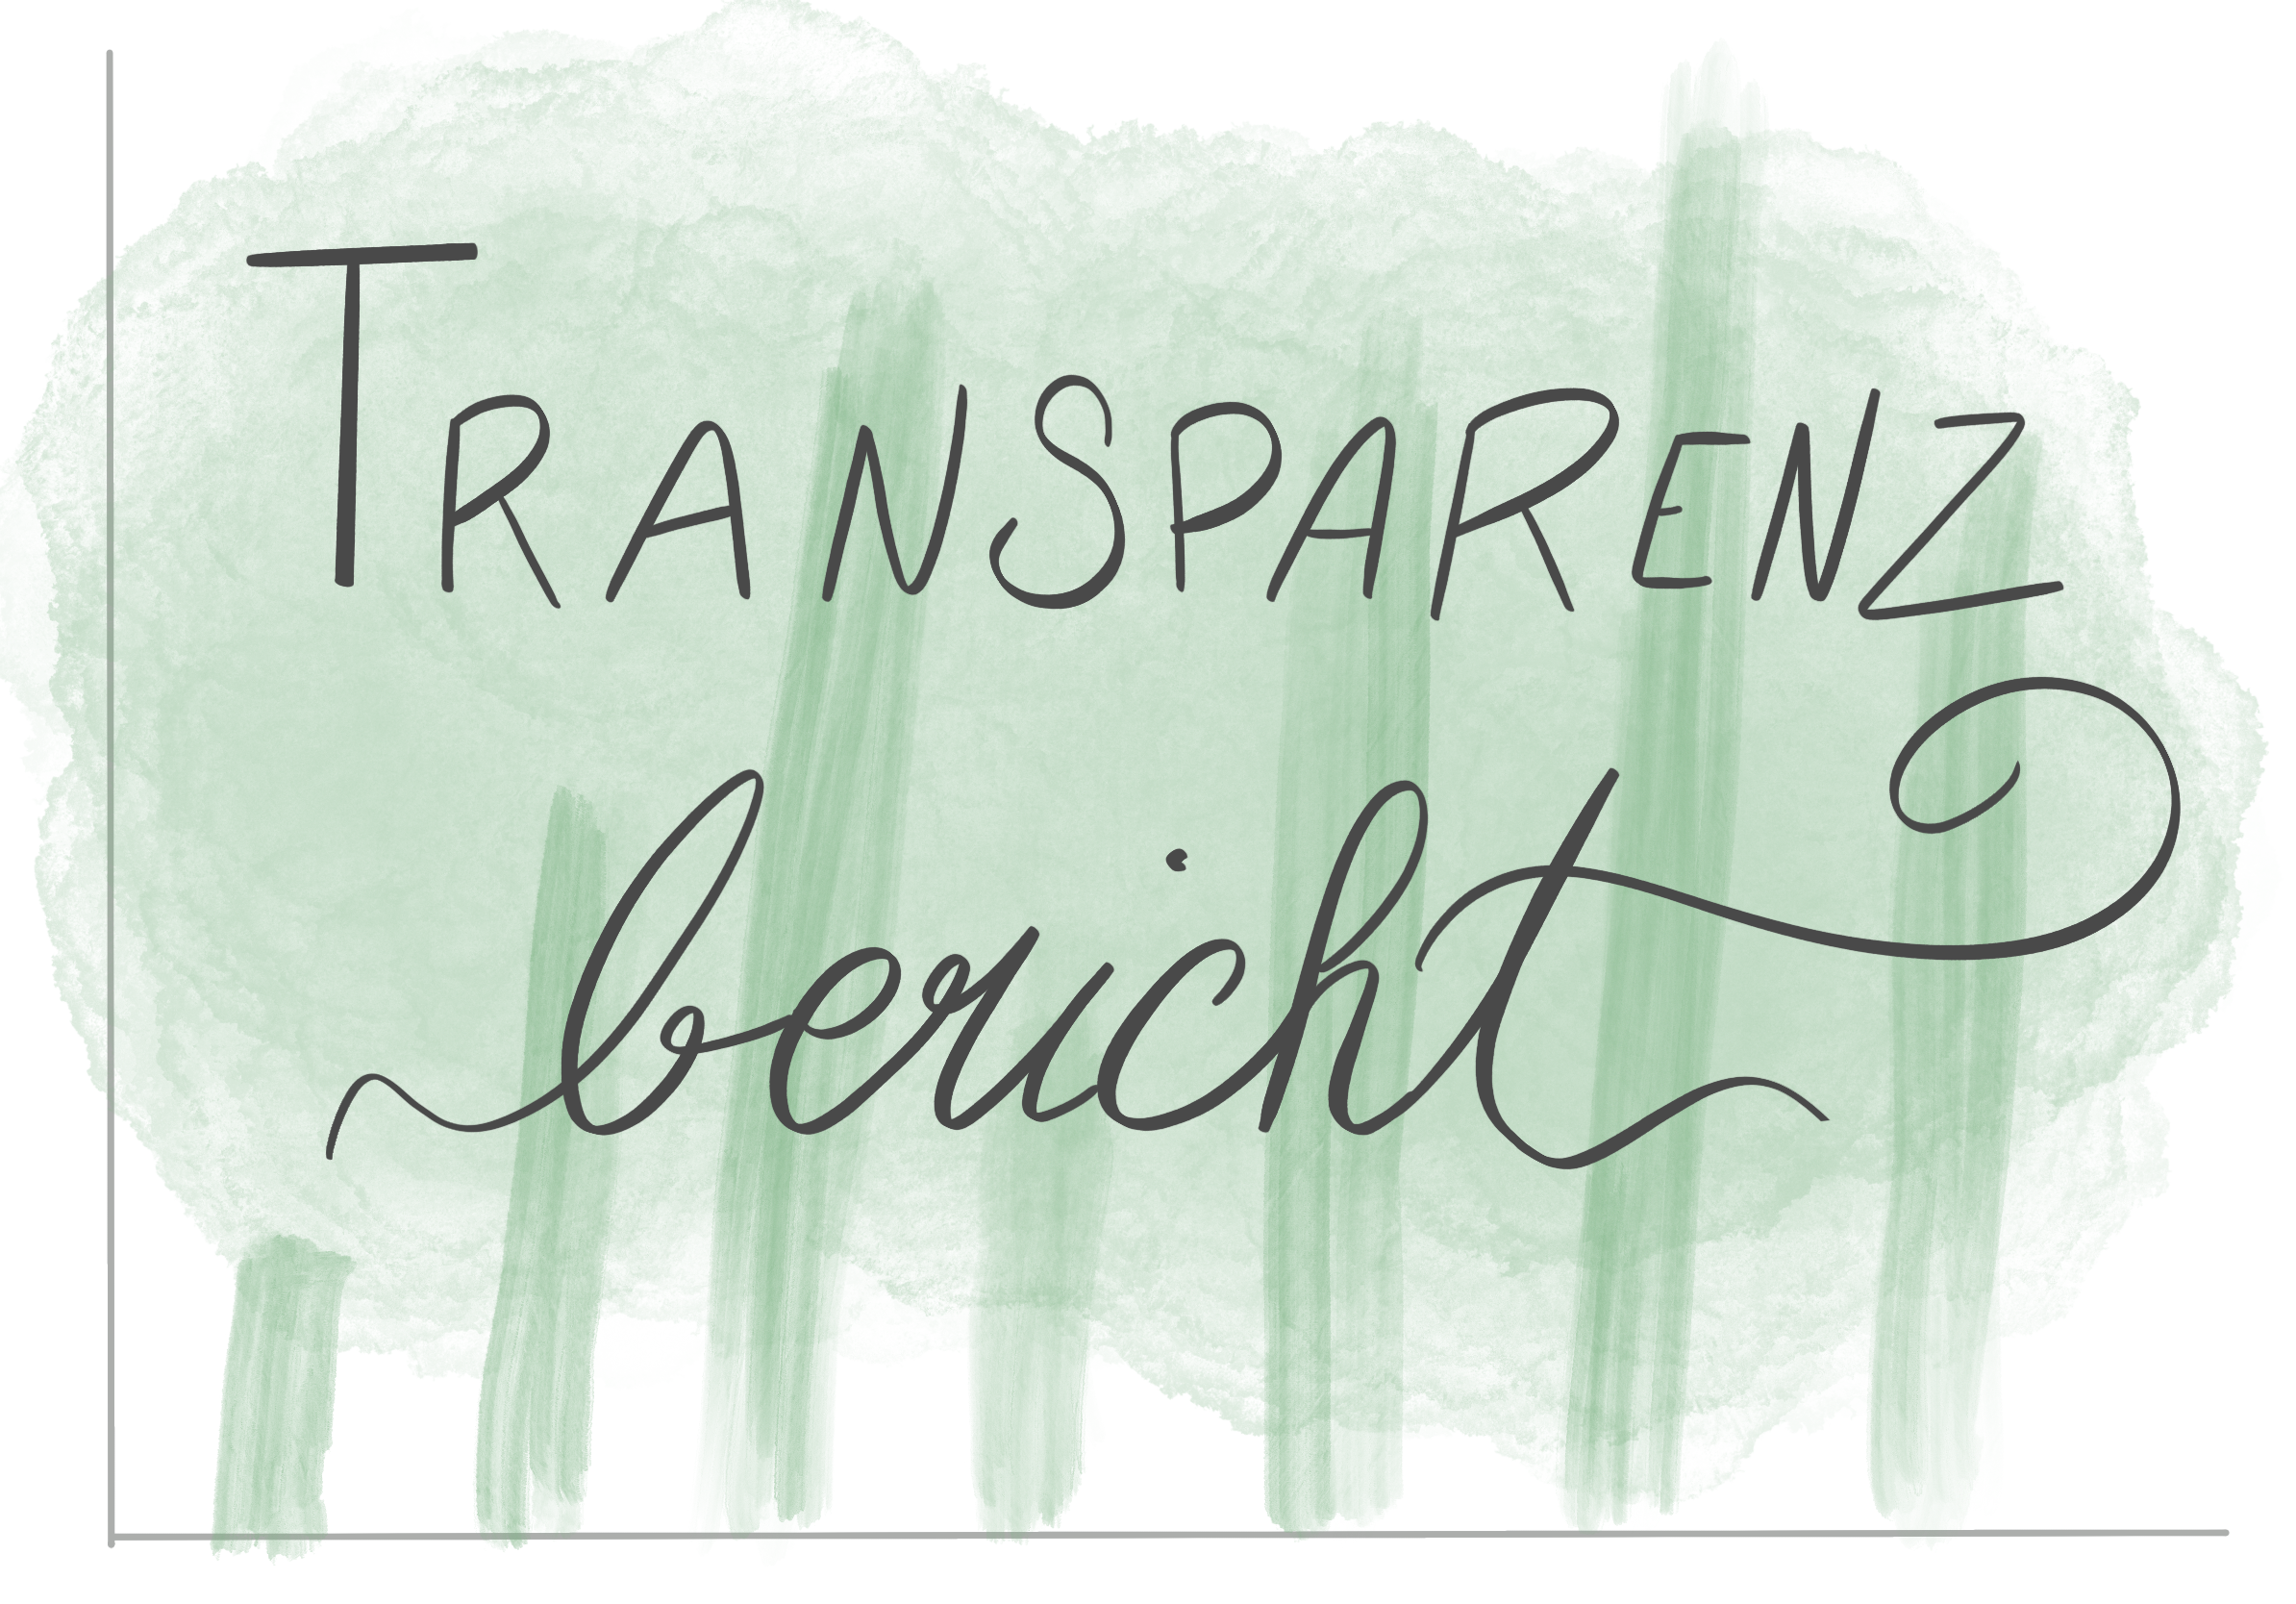 Transparenzbericht August 2020